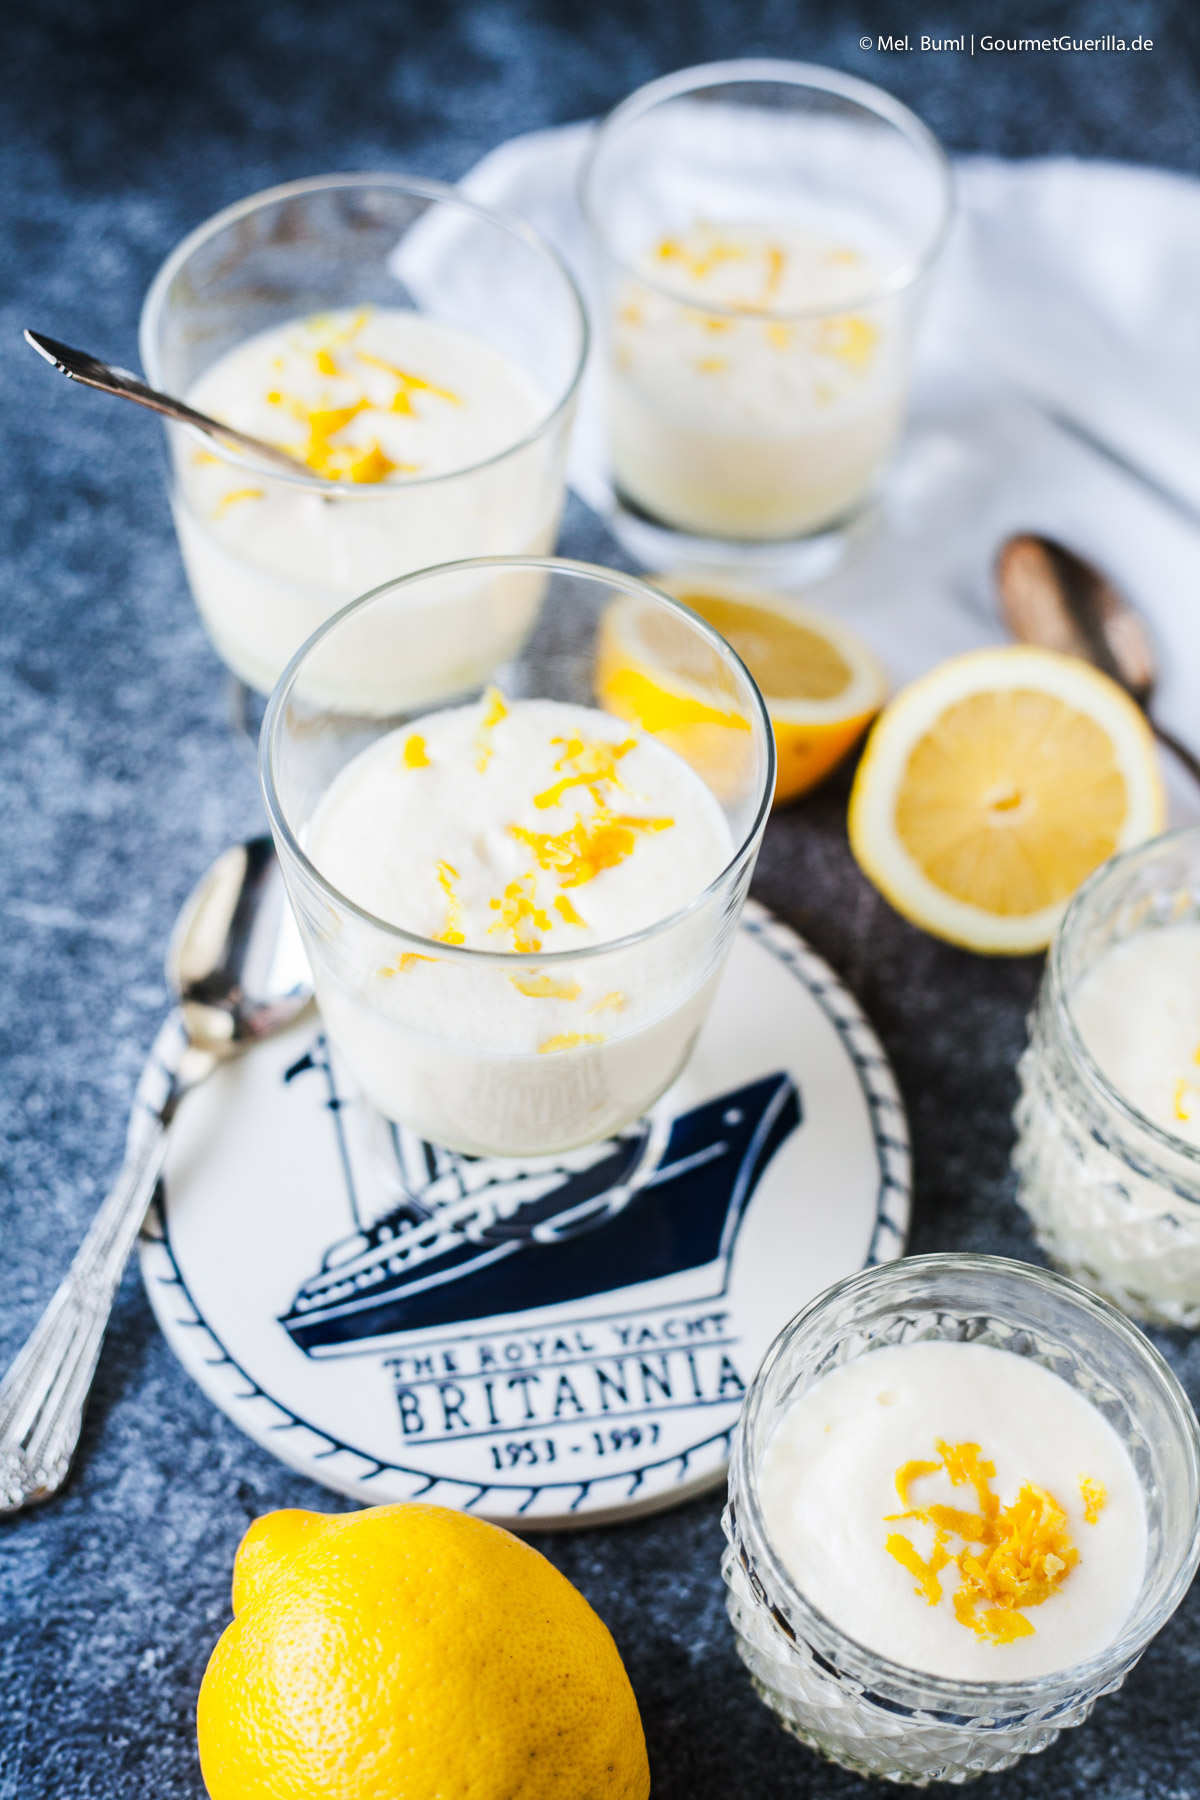 Syllabub - the typical English lemon cream with cream and alcohol GourmetGuerilla.de